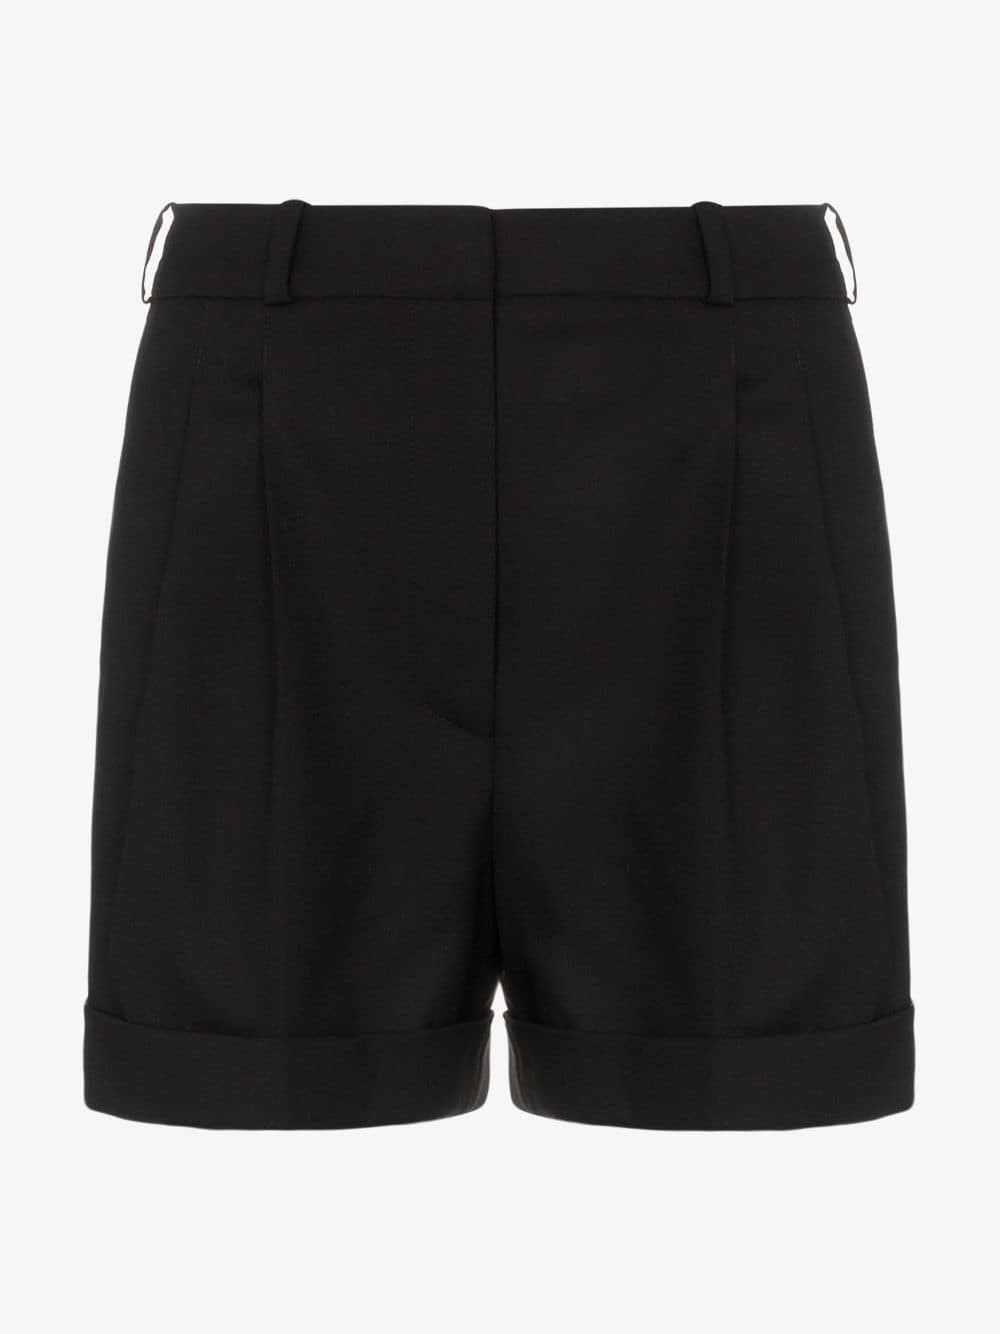 Racil City high waisted tailored shorts in black